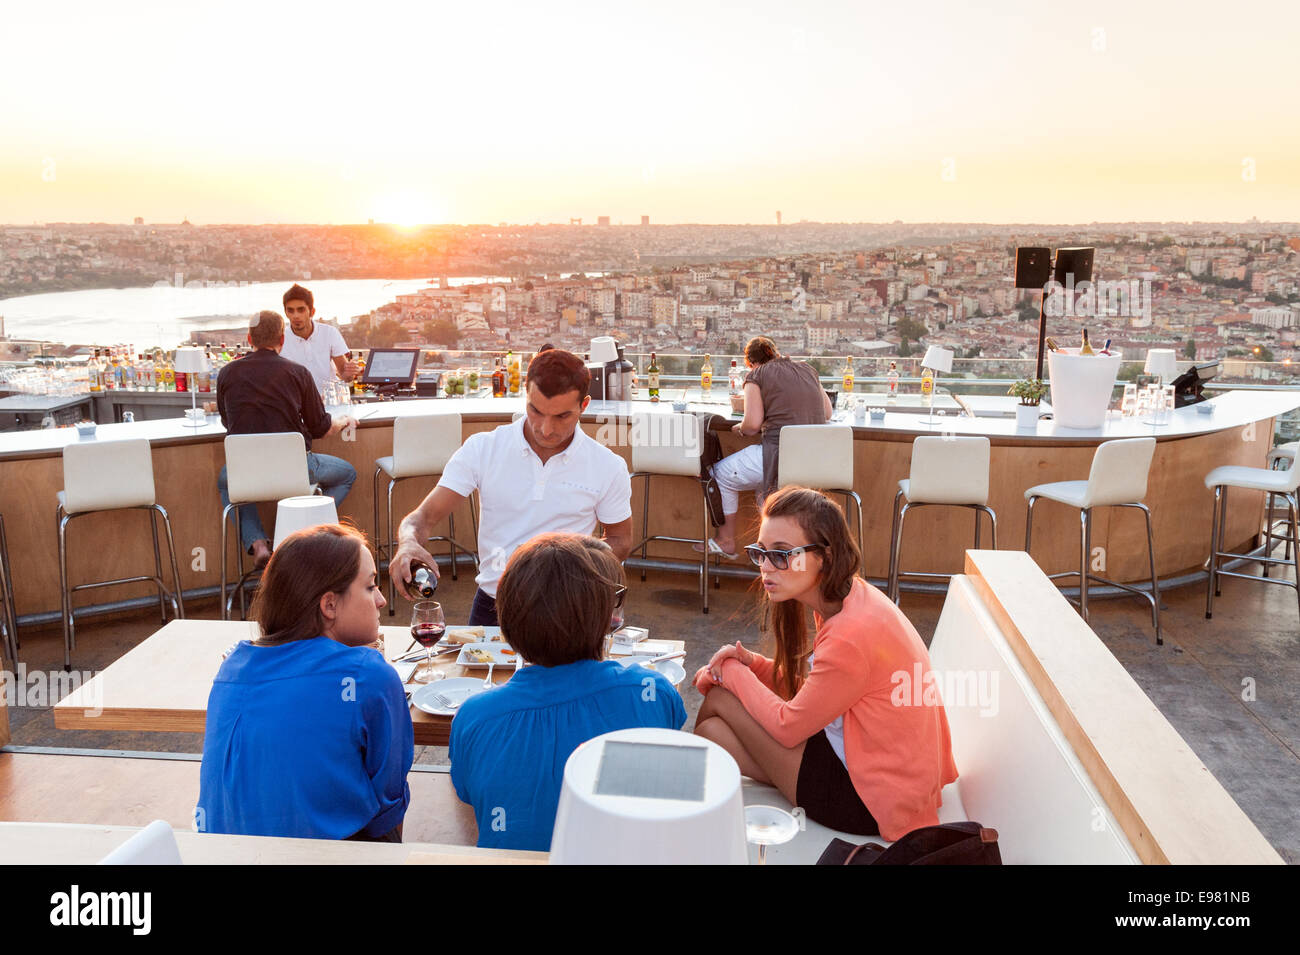 Fashionable young women at NuTeras rooftop bar and restaurant overlooking the Bosphorus, Beyoglu, Istanbul, Turkey - Stock Image